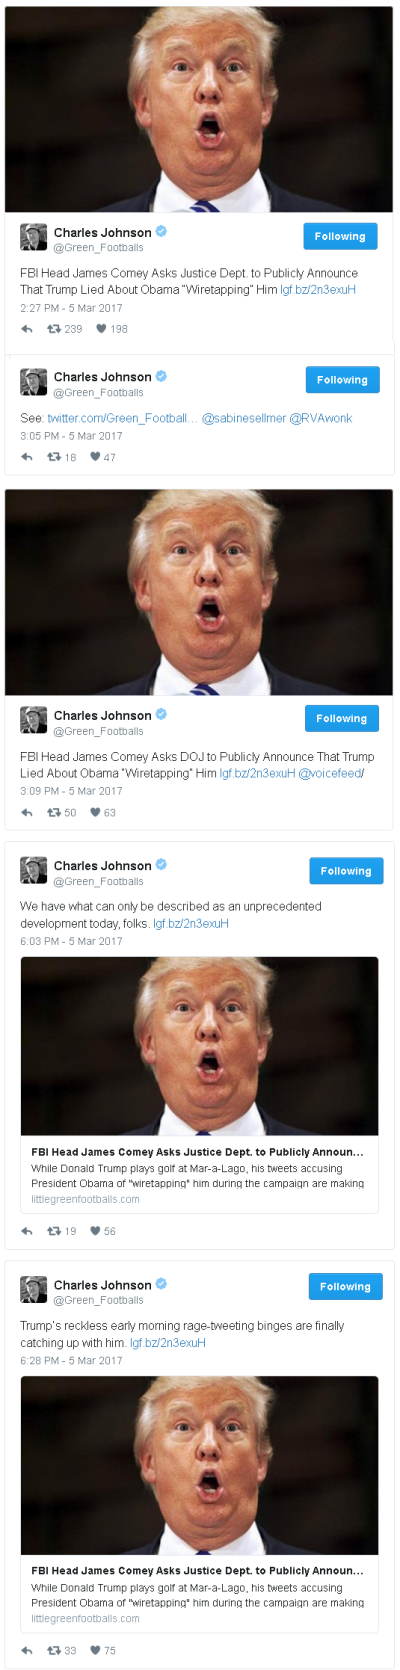 charles-johnson-hums-trump